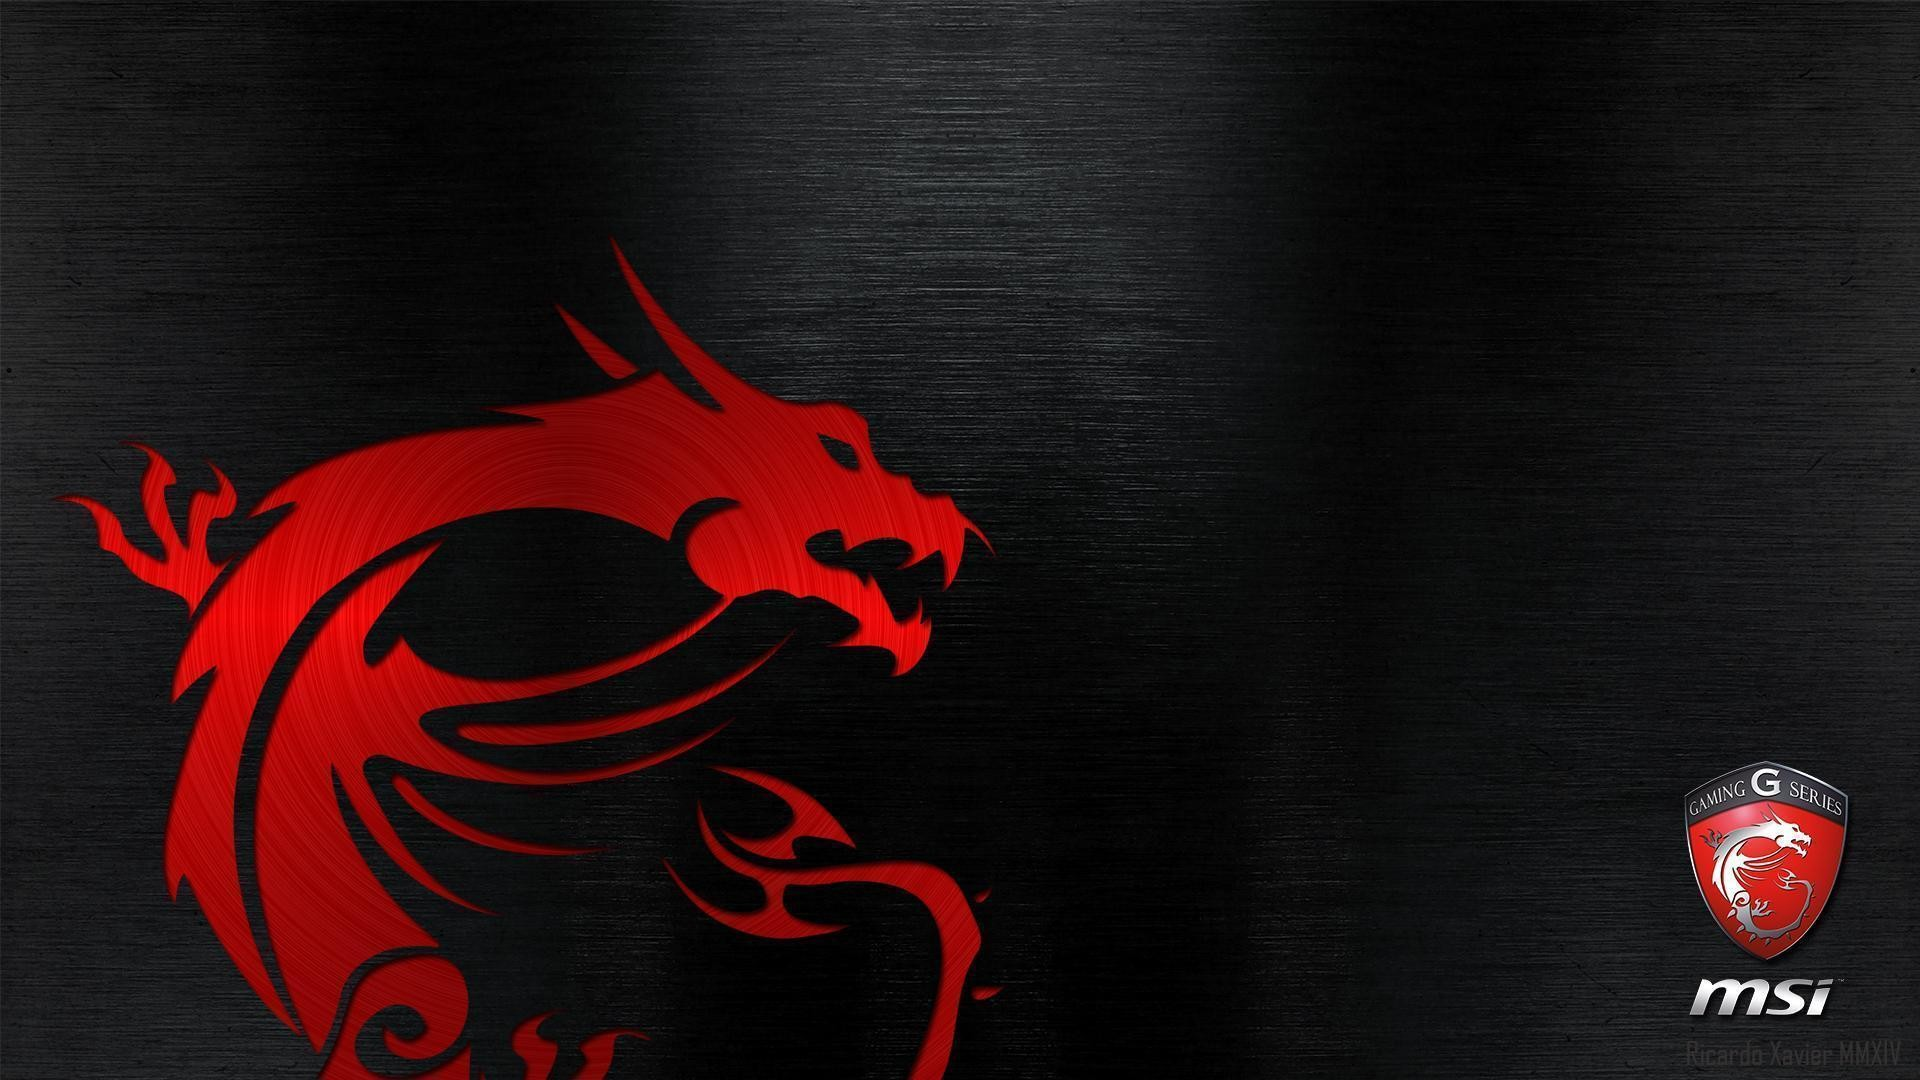 MSI Dragon Wallpaper 76 images